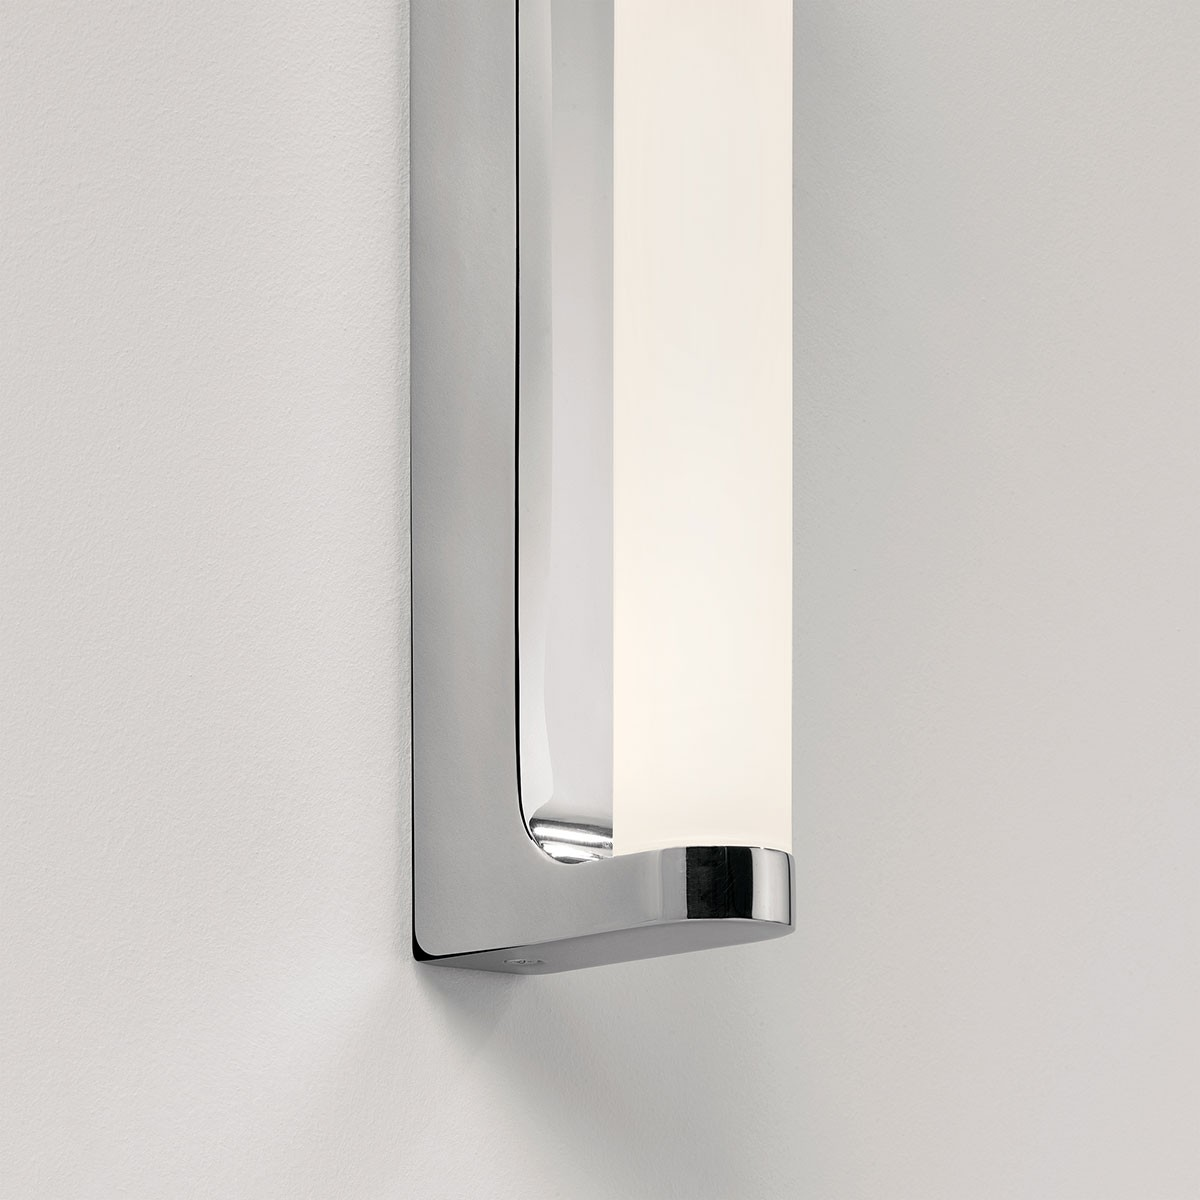 Led Bathroom Wall Lights Uk: Astro Avola Polished Chrome Bathroom LED Wall Light At UK